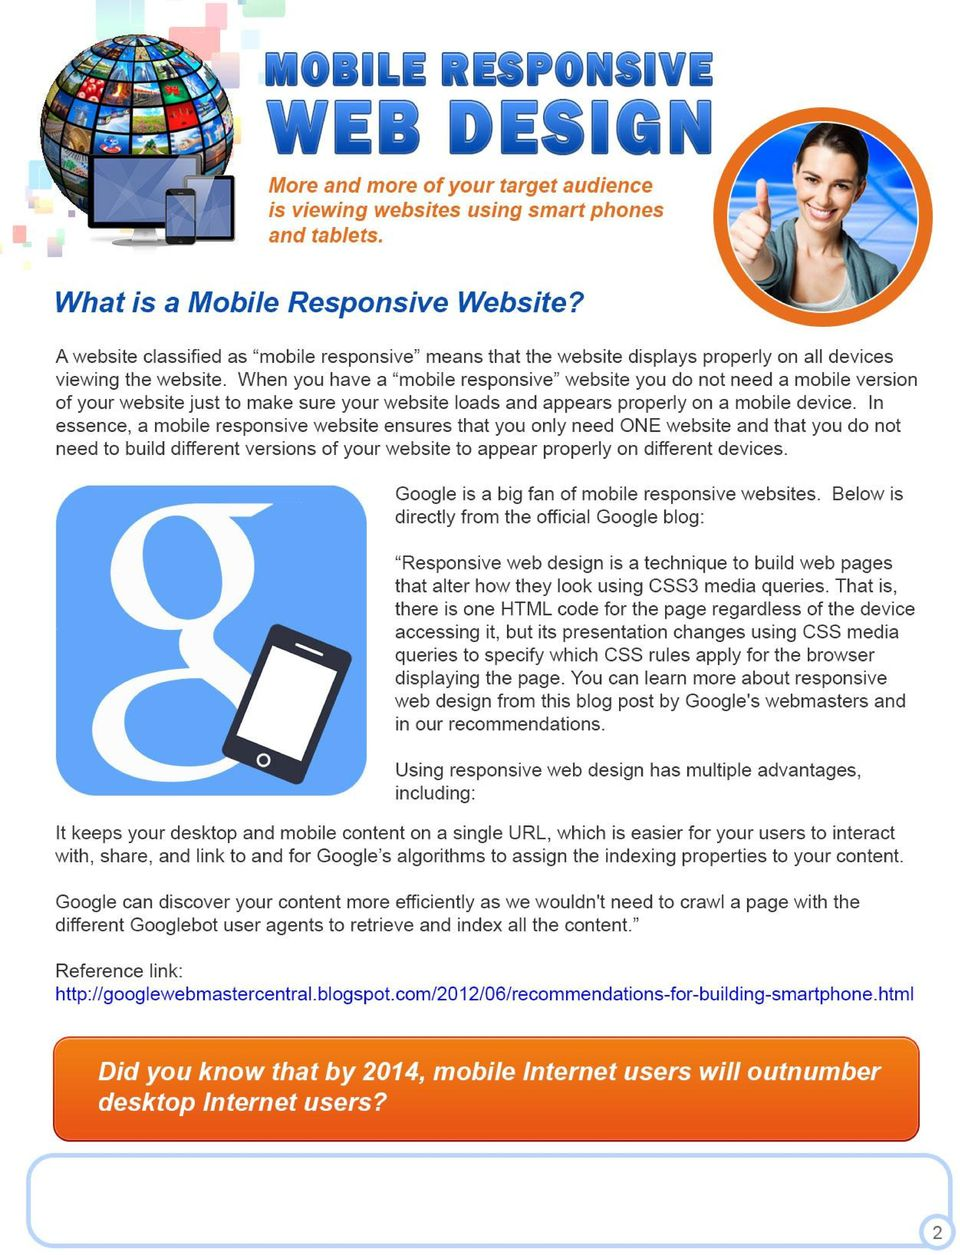 In essence, a mobile responsive website ensures that you only need ONE website and that you do not need to build different versions of your website to appear properly on different devices.